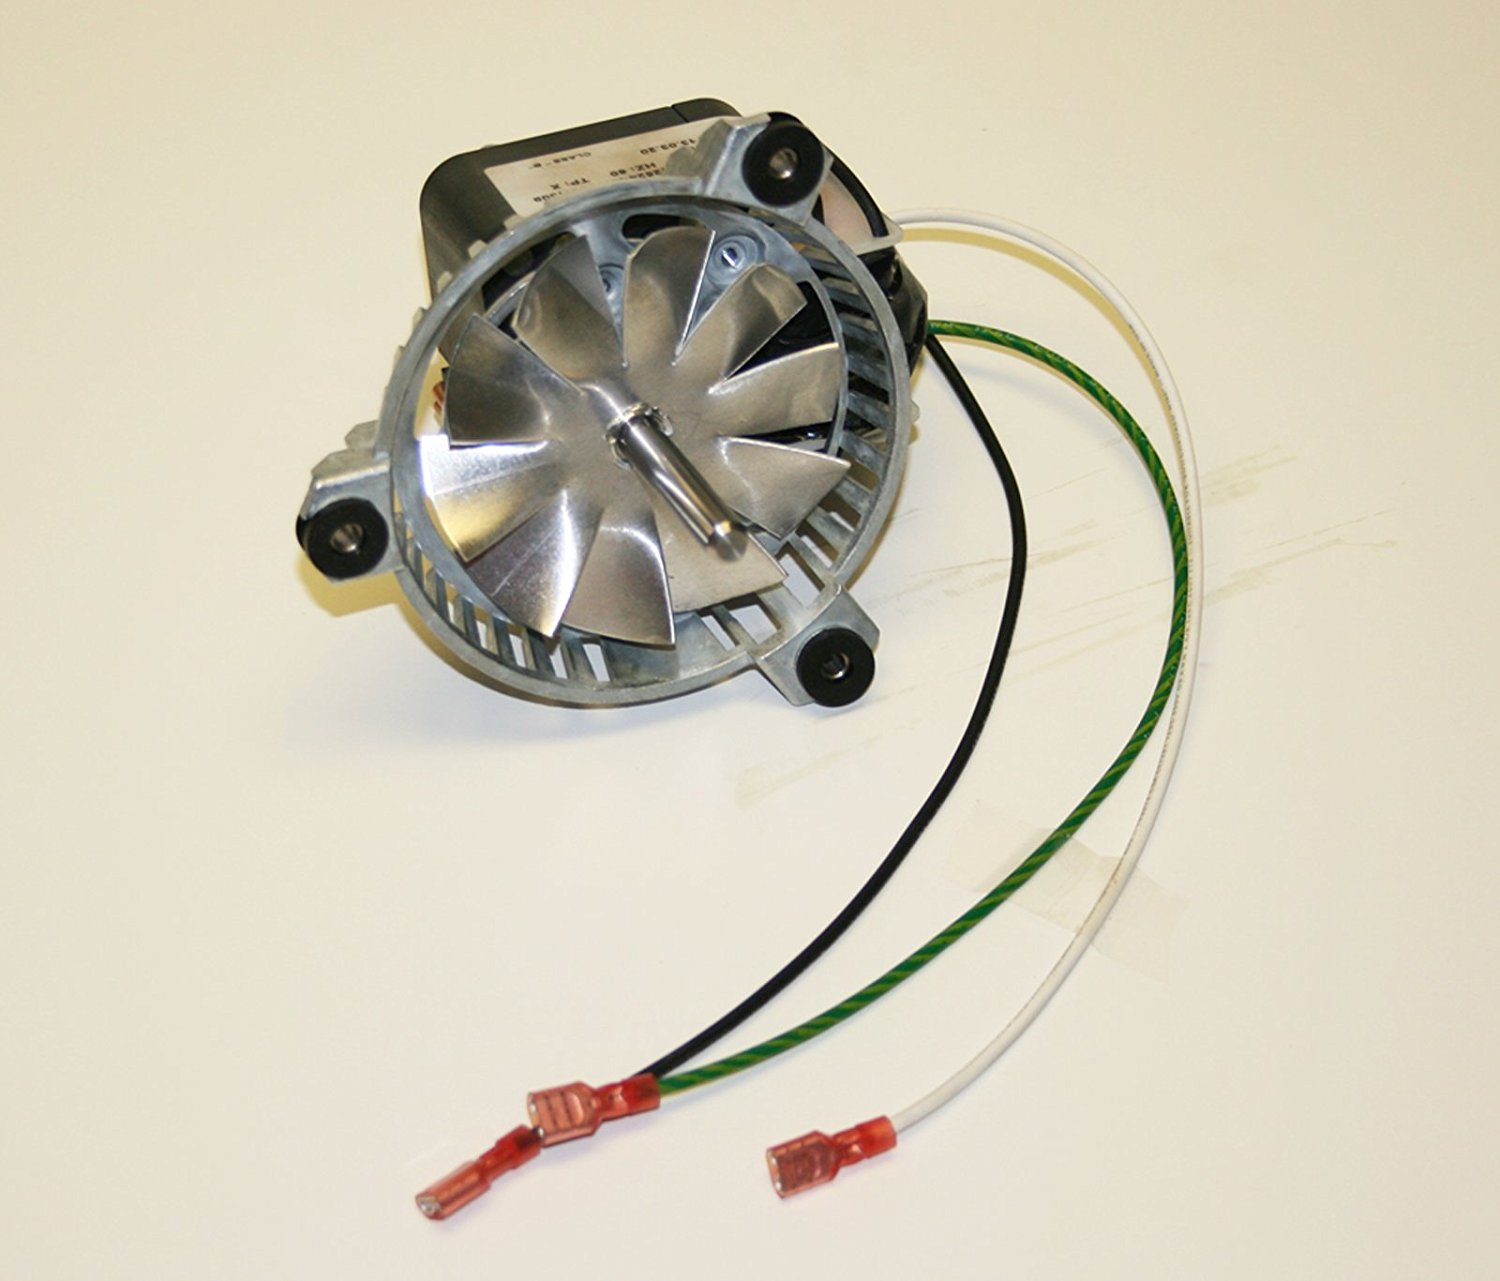 Harman Combustion Exhaust Fan Motor for Pellet Stoves #3-21-08639 ...